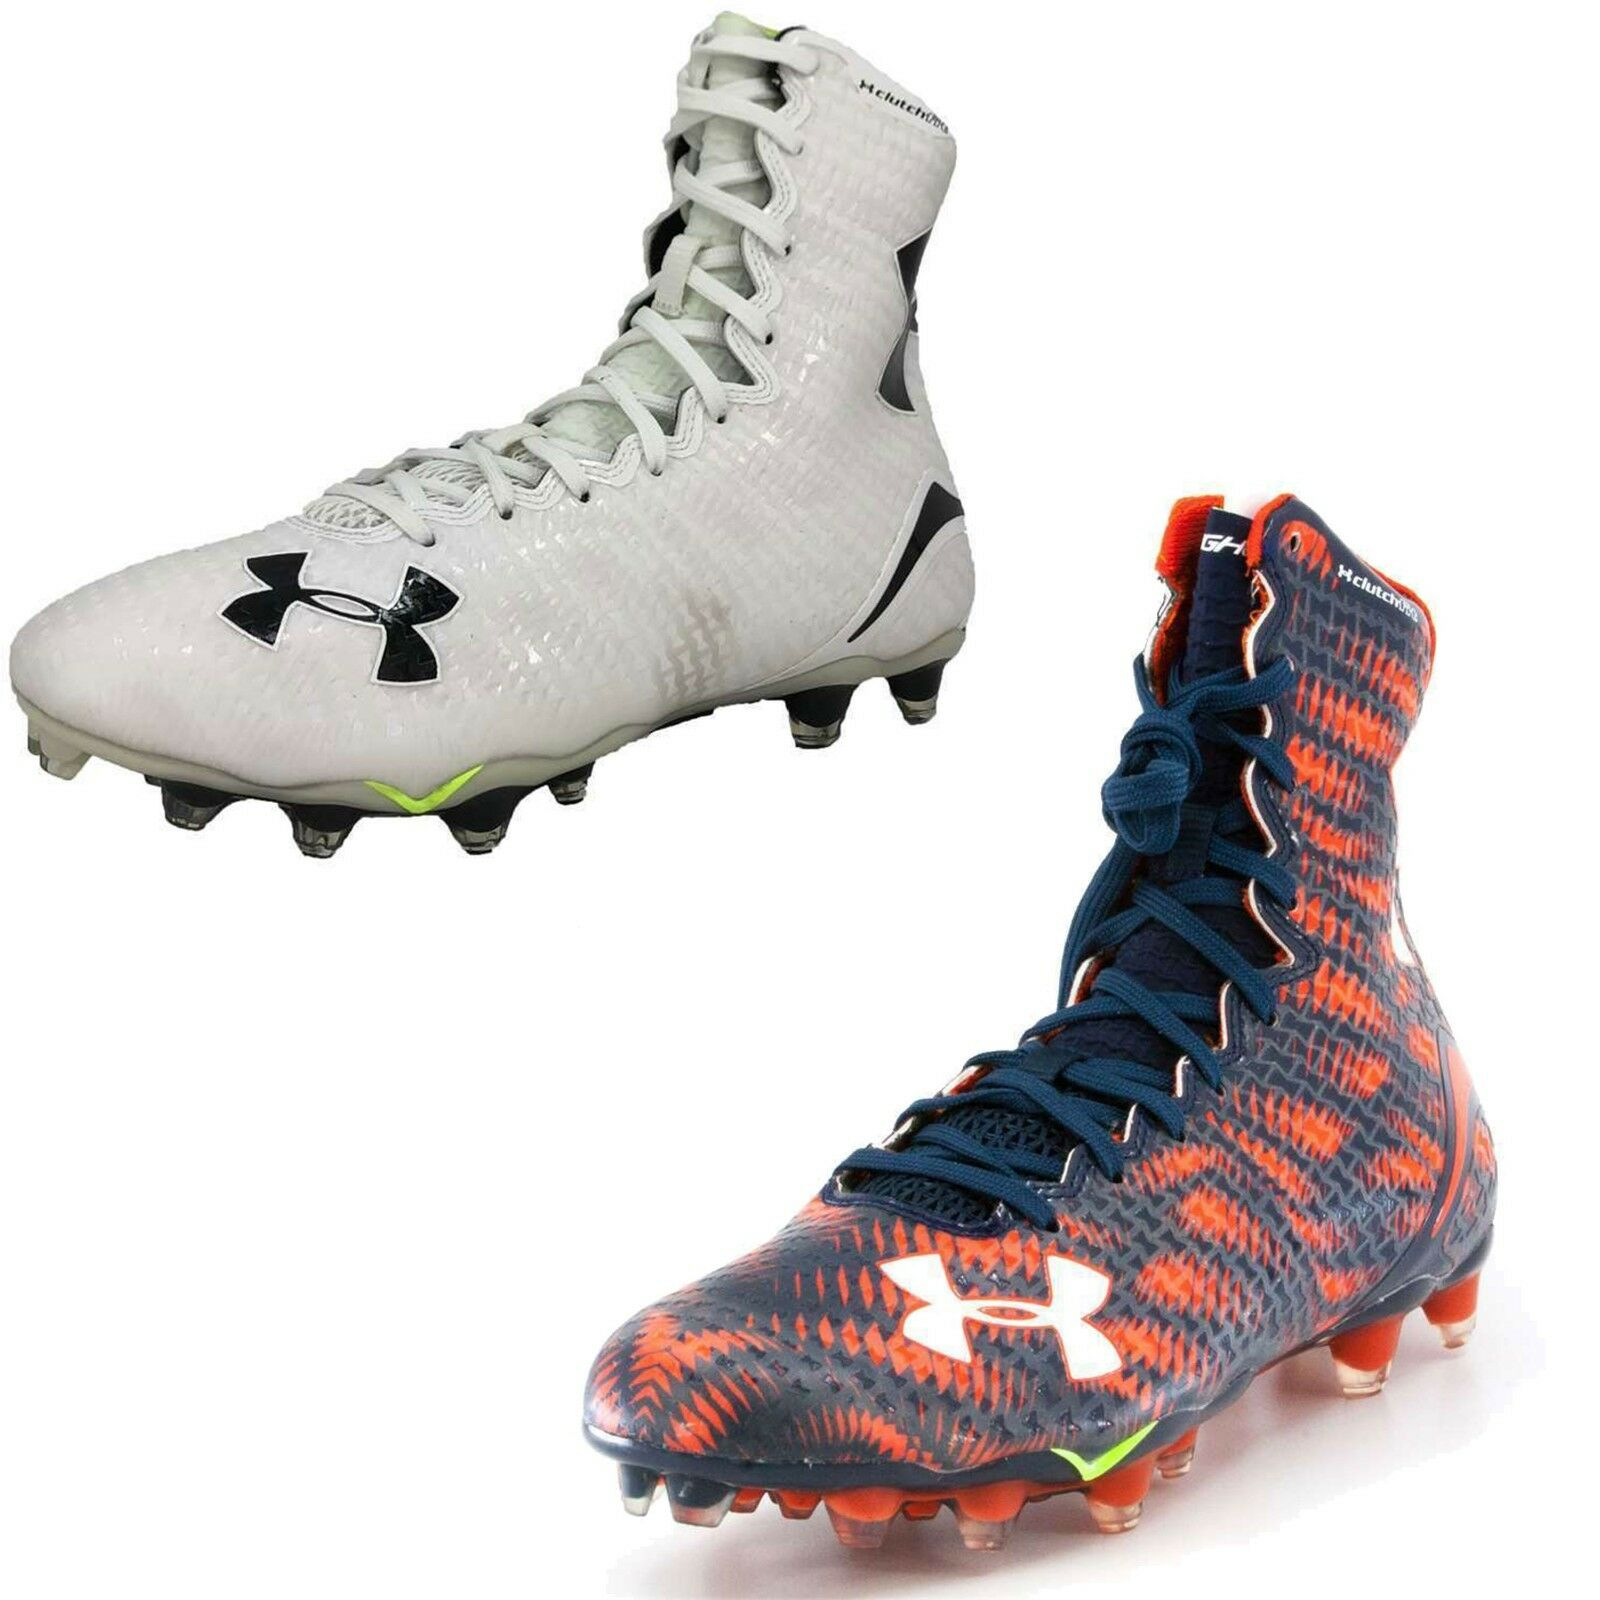 Under Armour Uomo Uomo Uomo UA Team Highlight MC Football Cleats f52833